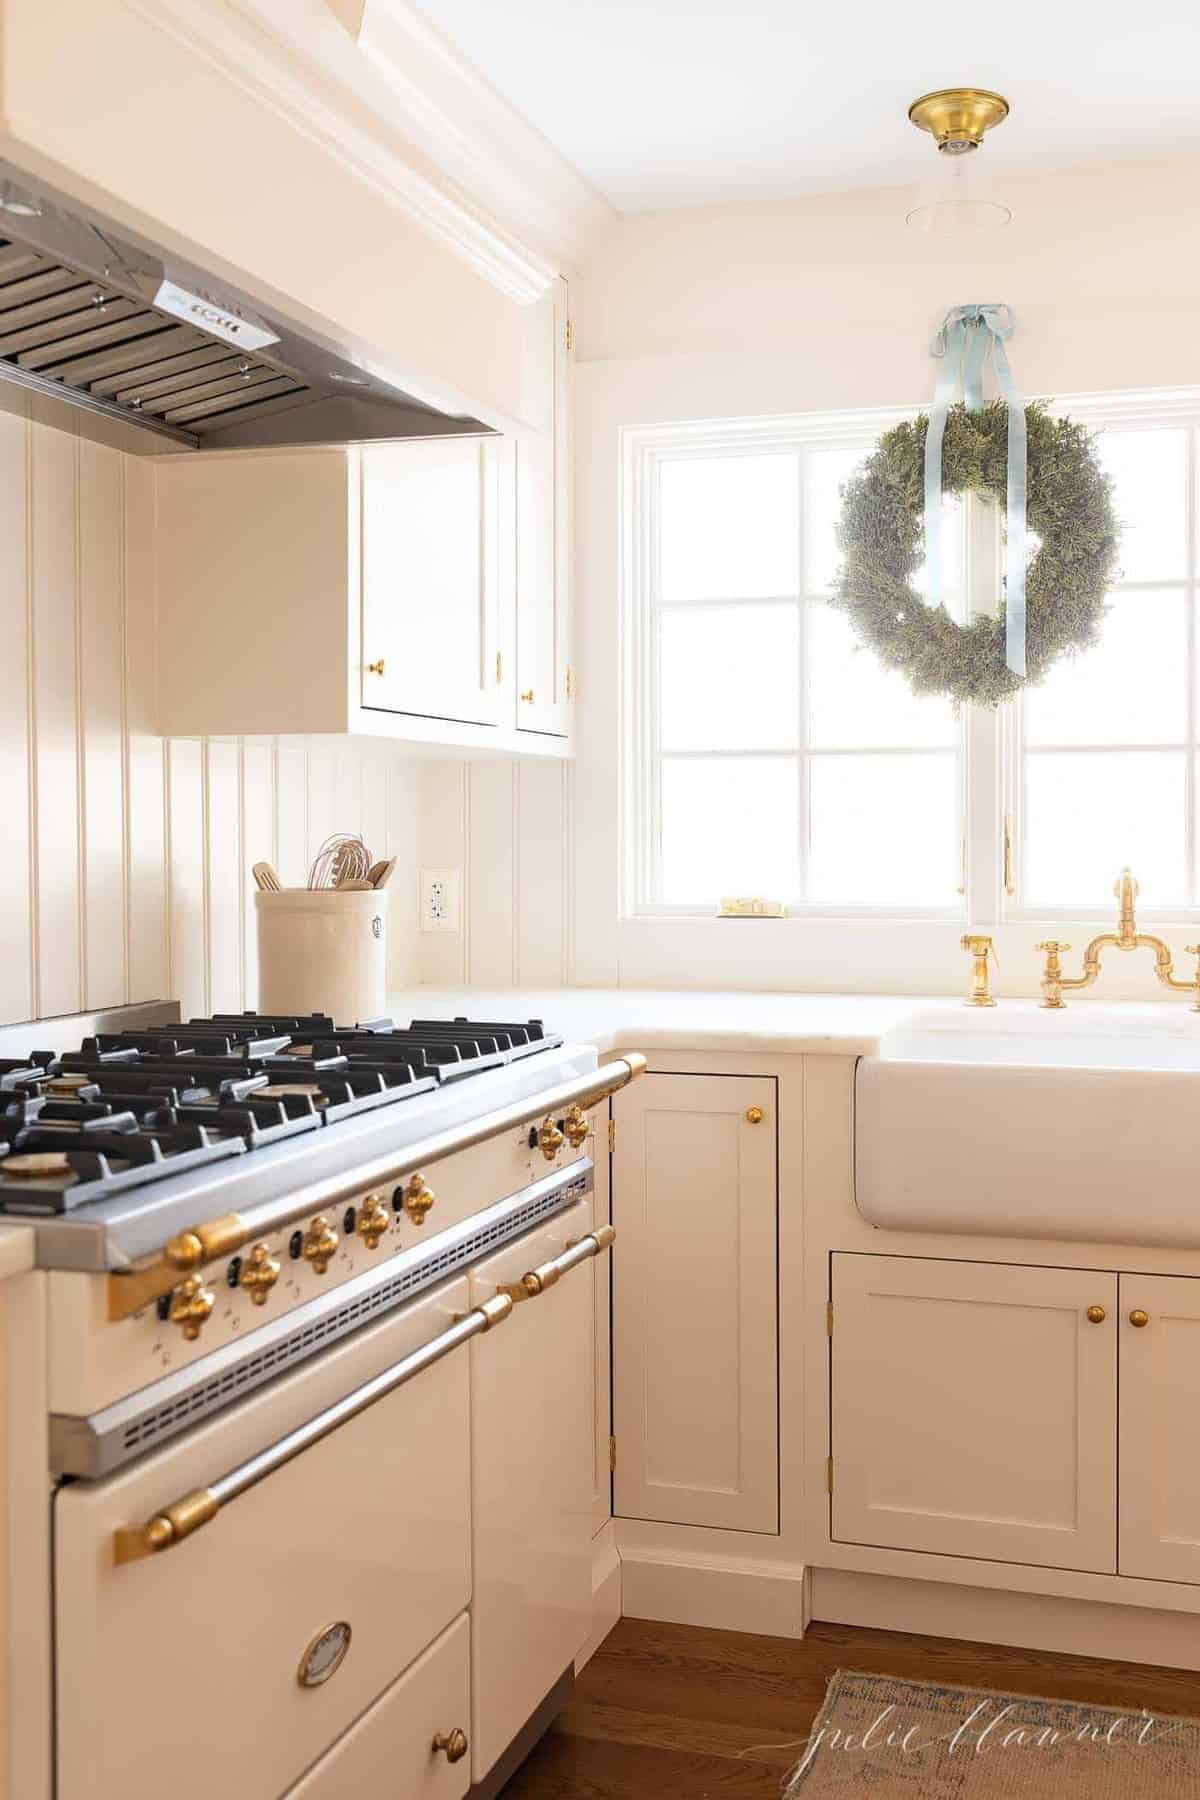 A white kitchen with shaker style kitchen cabinets.